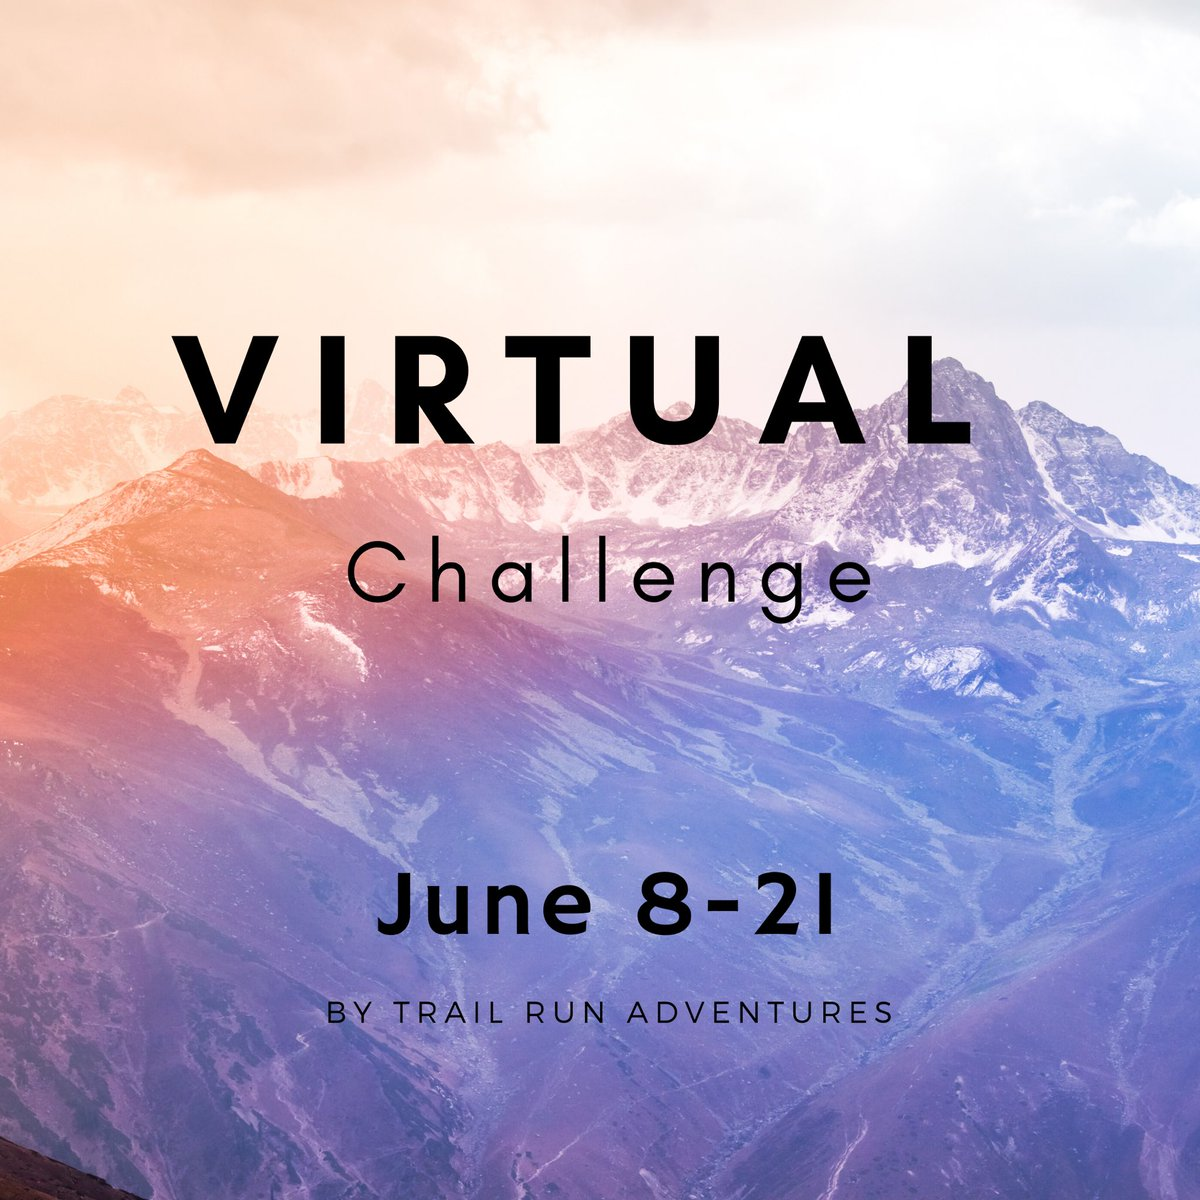 It's on! A virtual race with a twist and loads of awesome prizes trailrunadventures.com/virtual-challe…